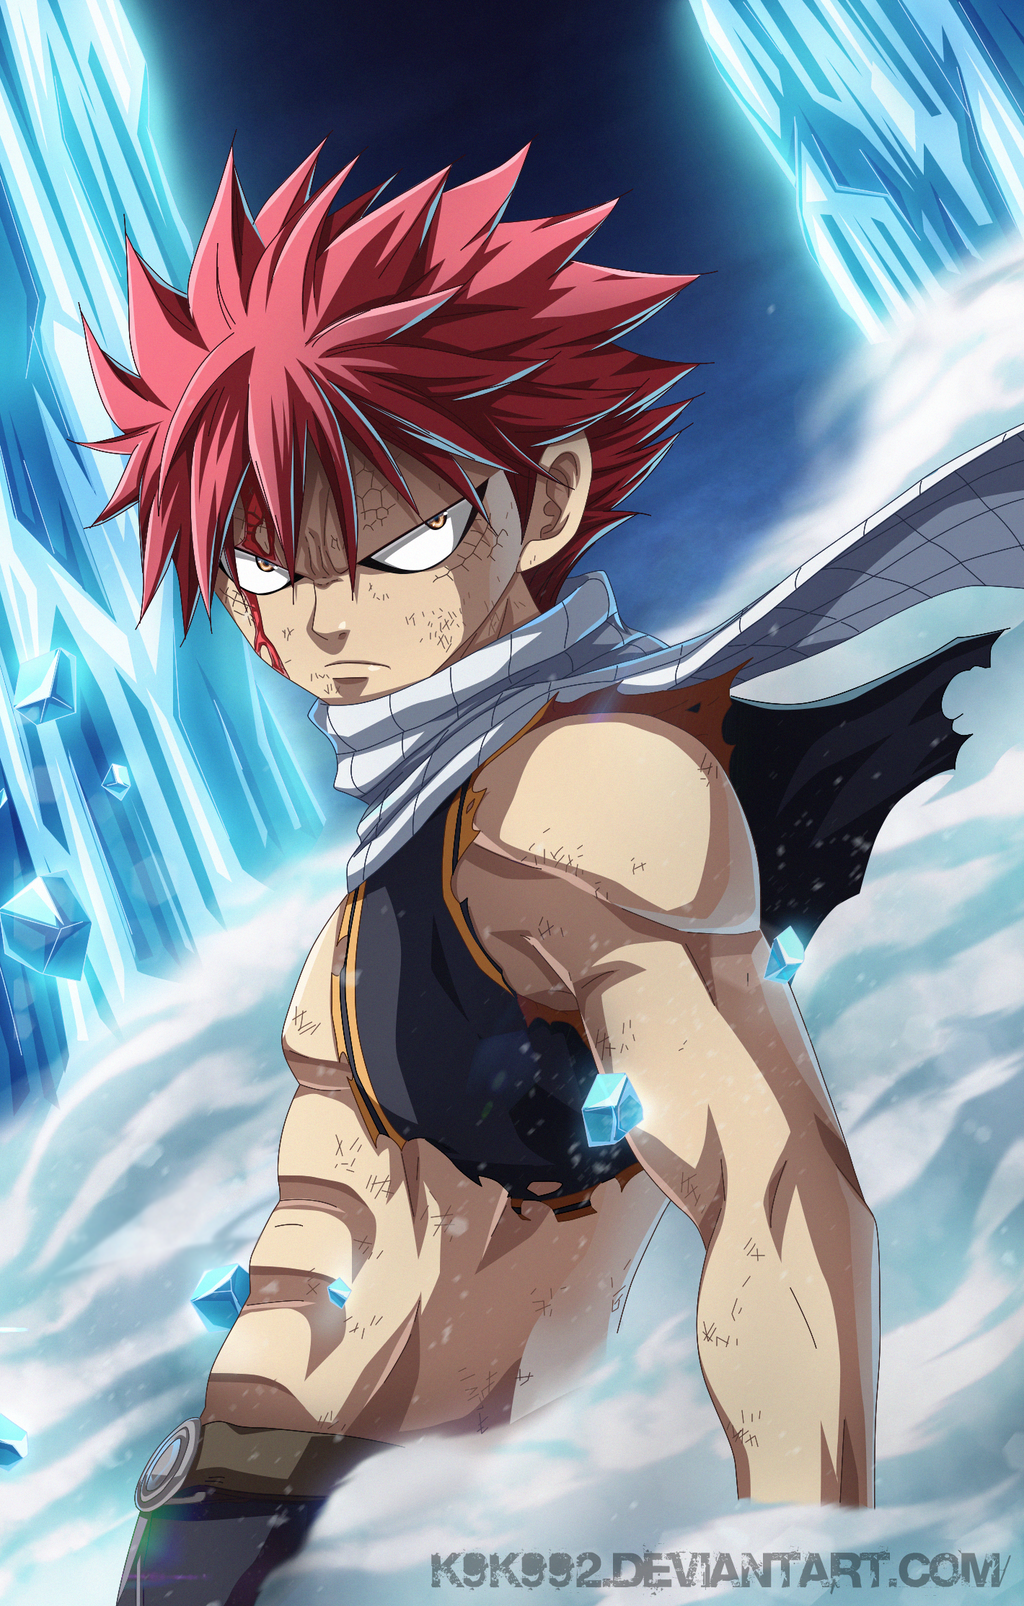 natsu dragon force fairy tail 98 by k9k992 on deviantart